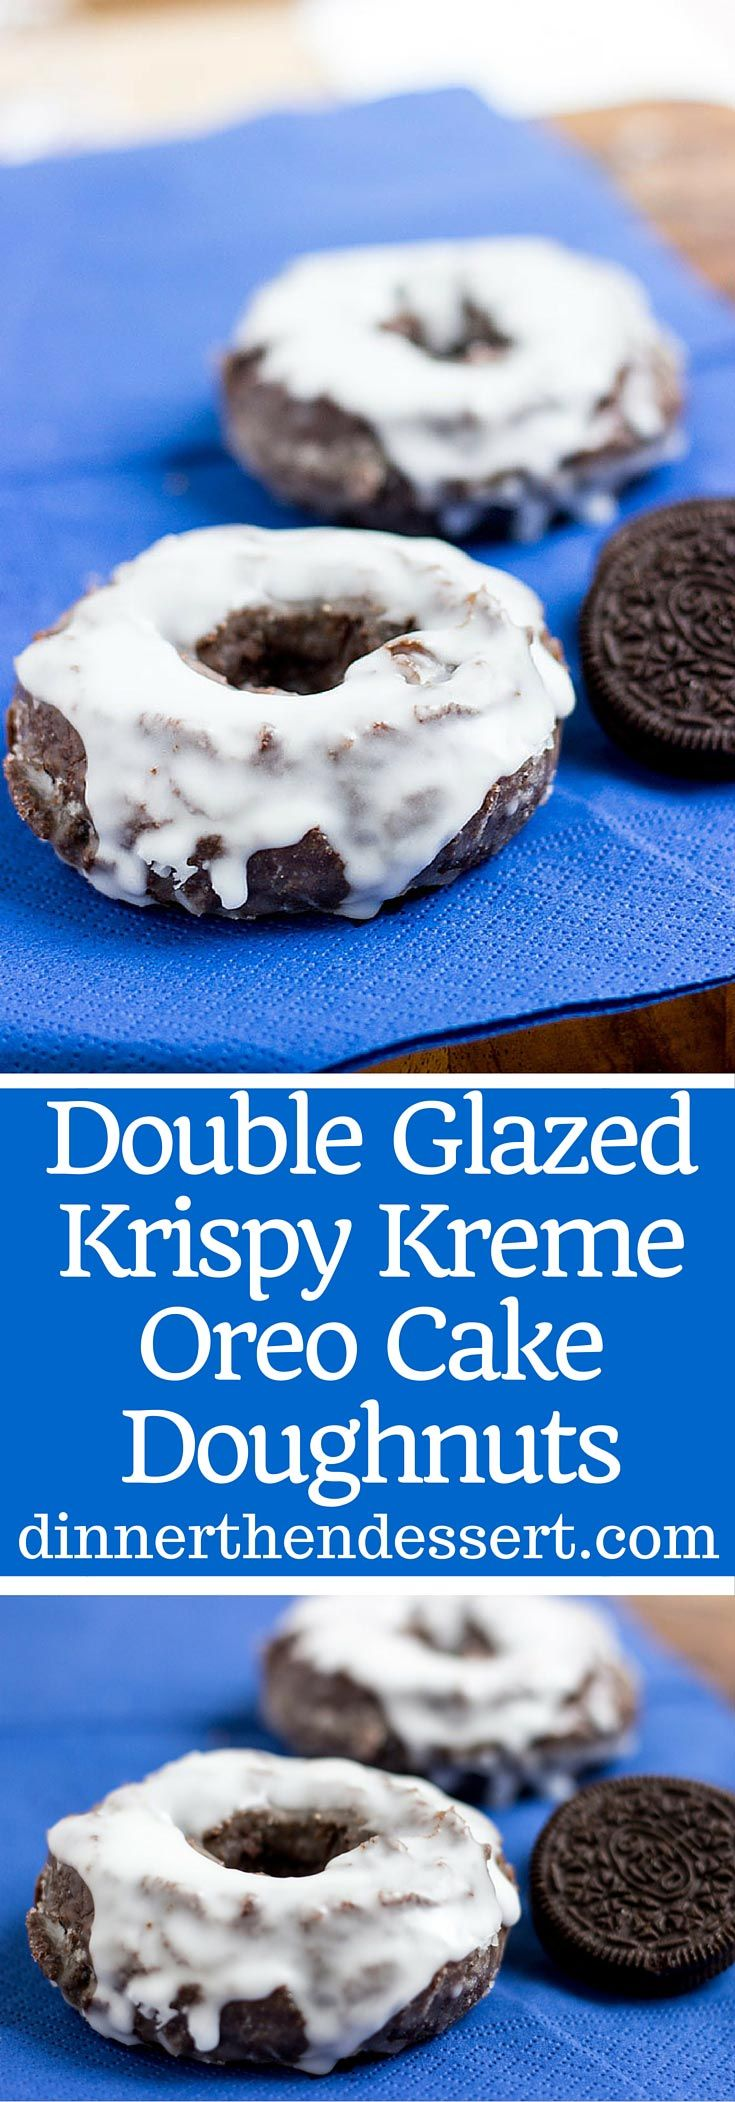 These Krispy Kreme Oreo Cake Doughnuts are a fun play on the Krispy Kreme chocolate glazed cake doughnut and Oreo doughnut that is double glazed!